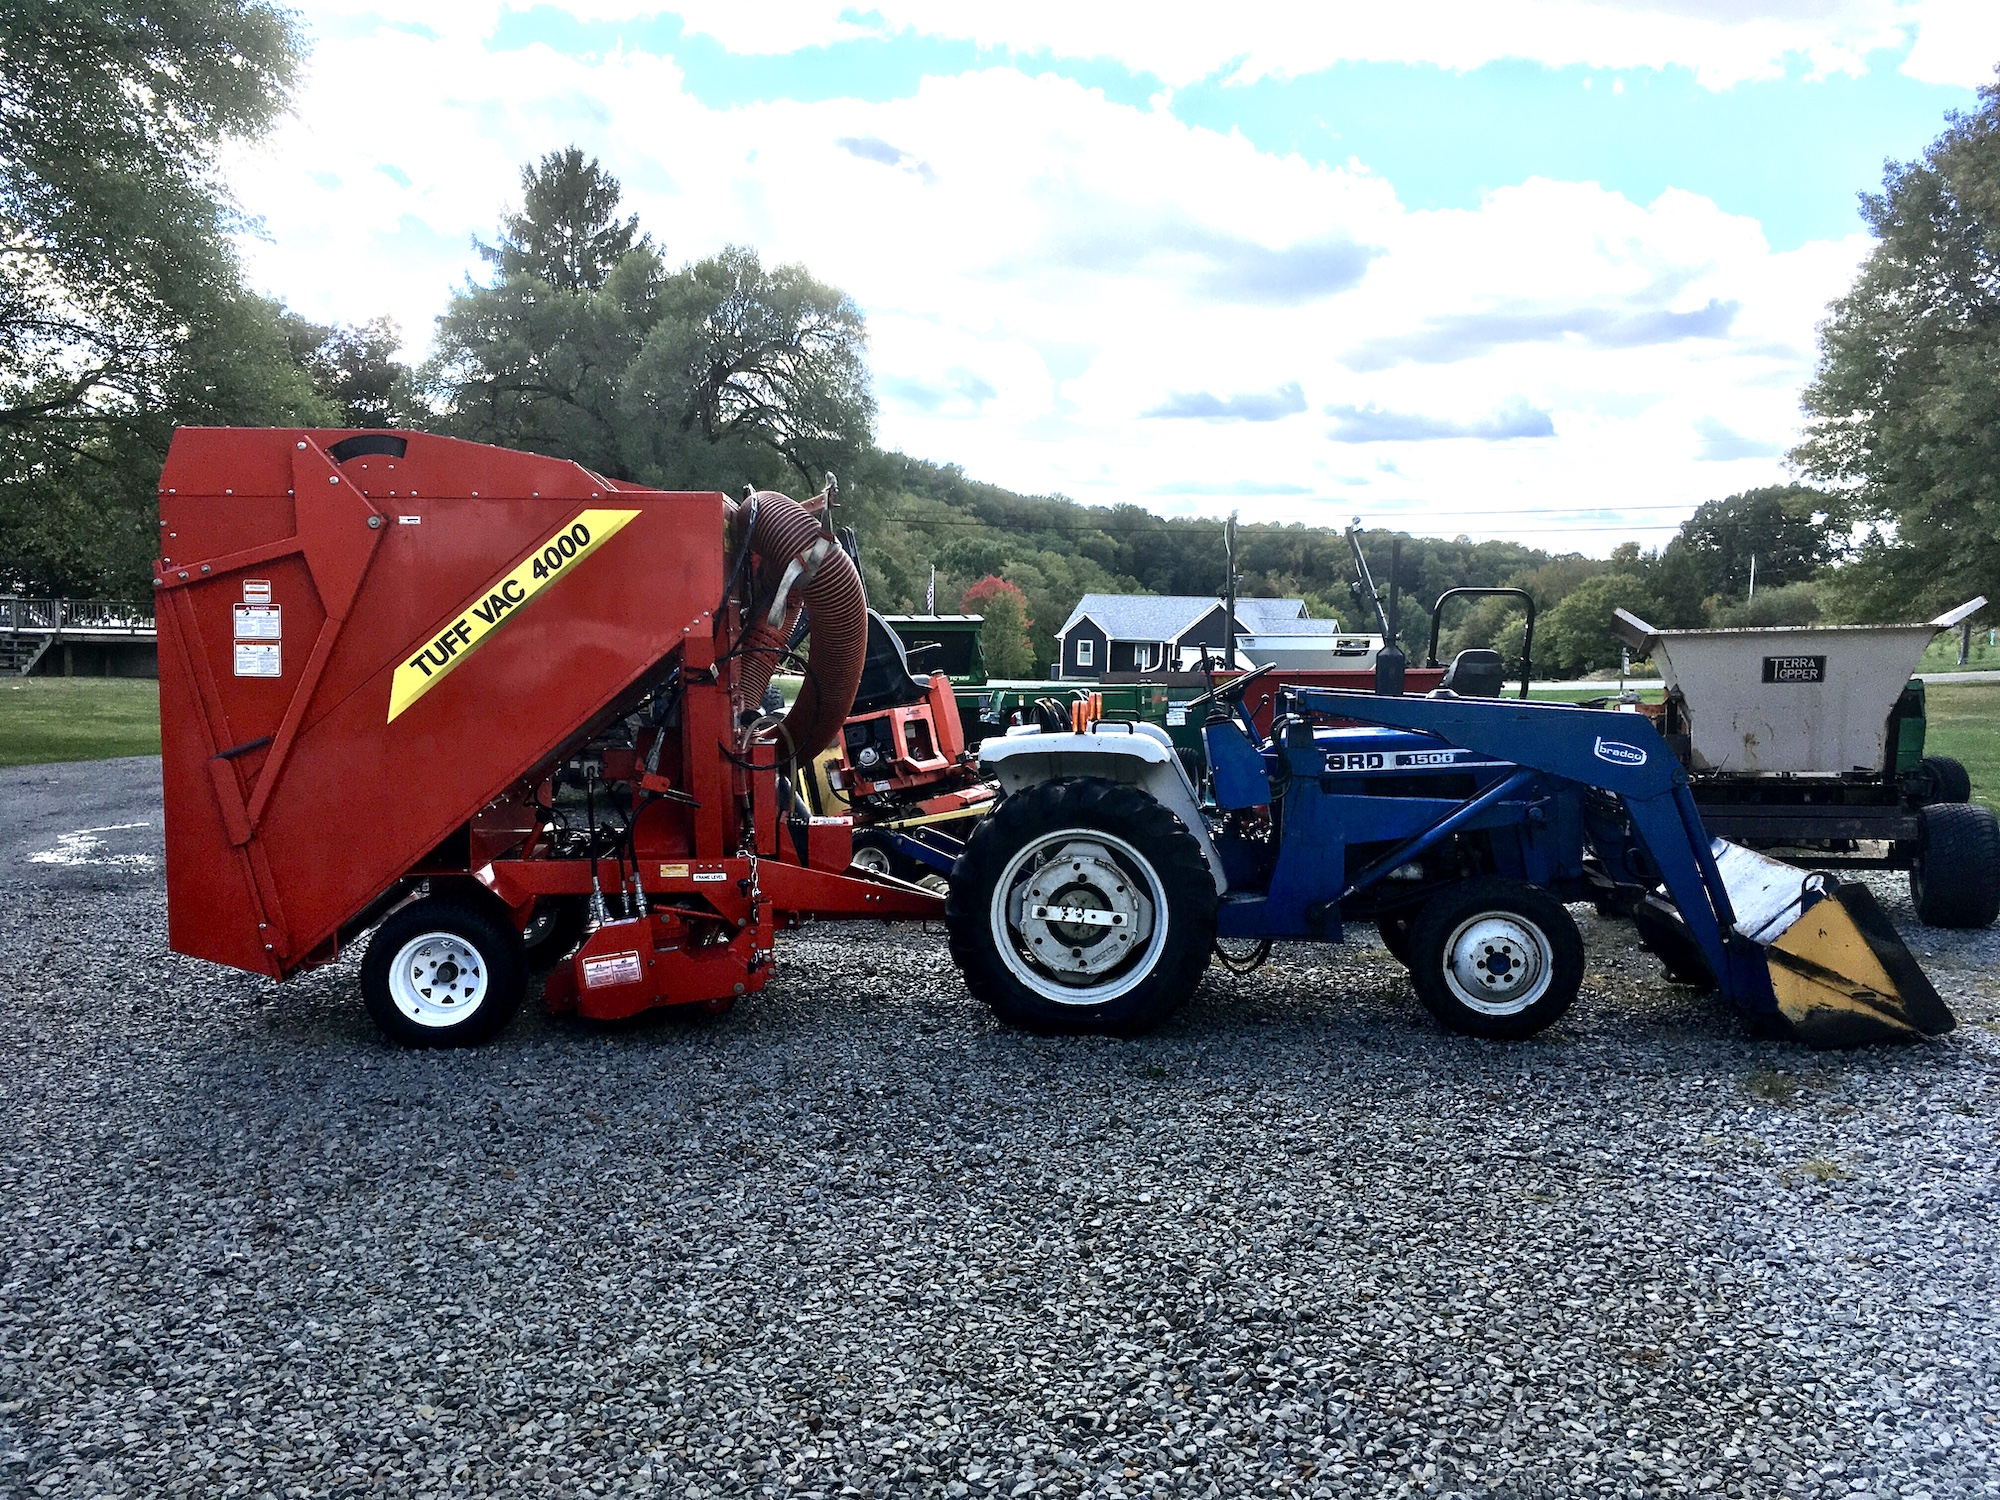 Ford-1500-Tractor-Loader-4